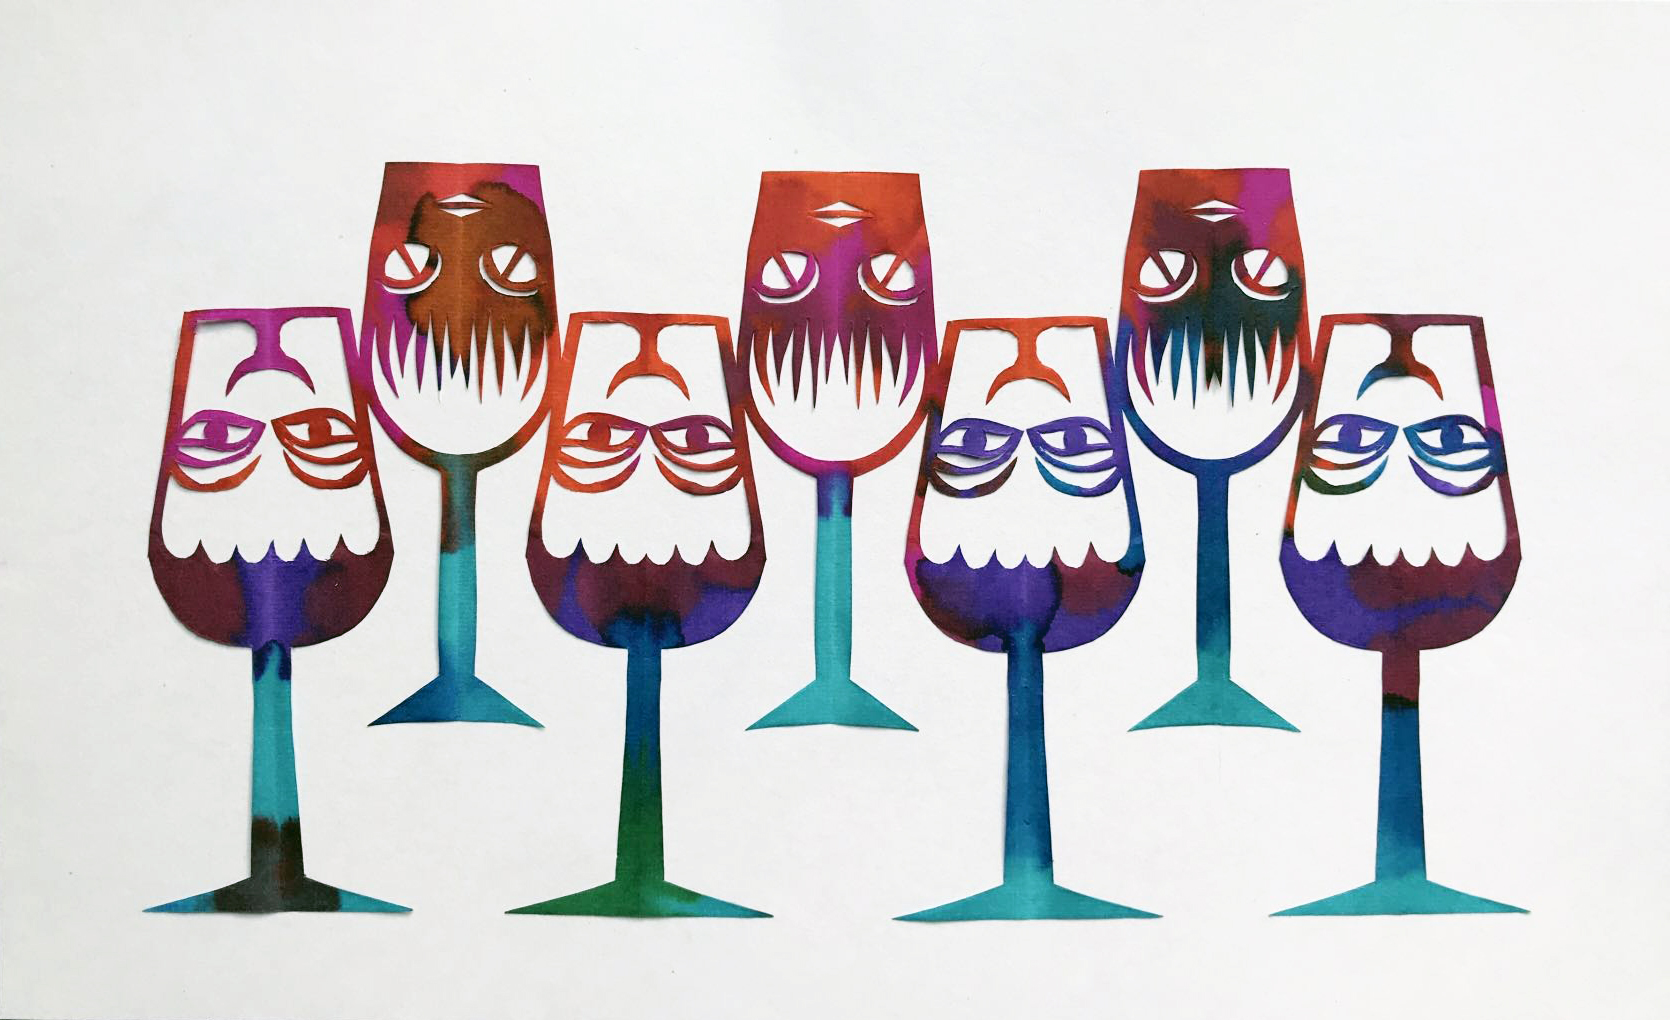 20180421 Wine Glasses 01